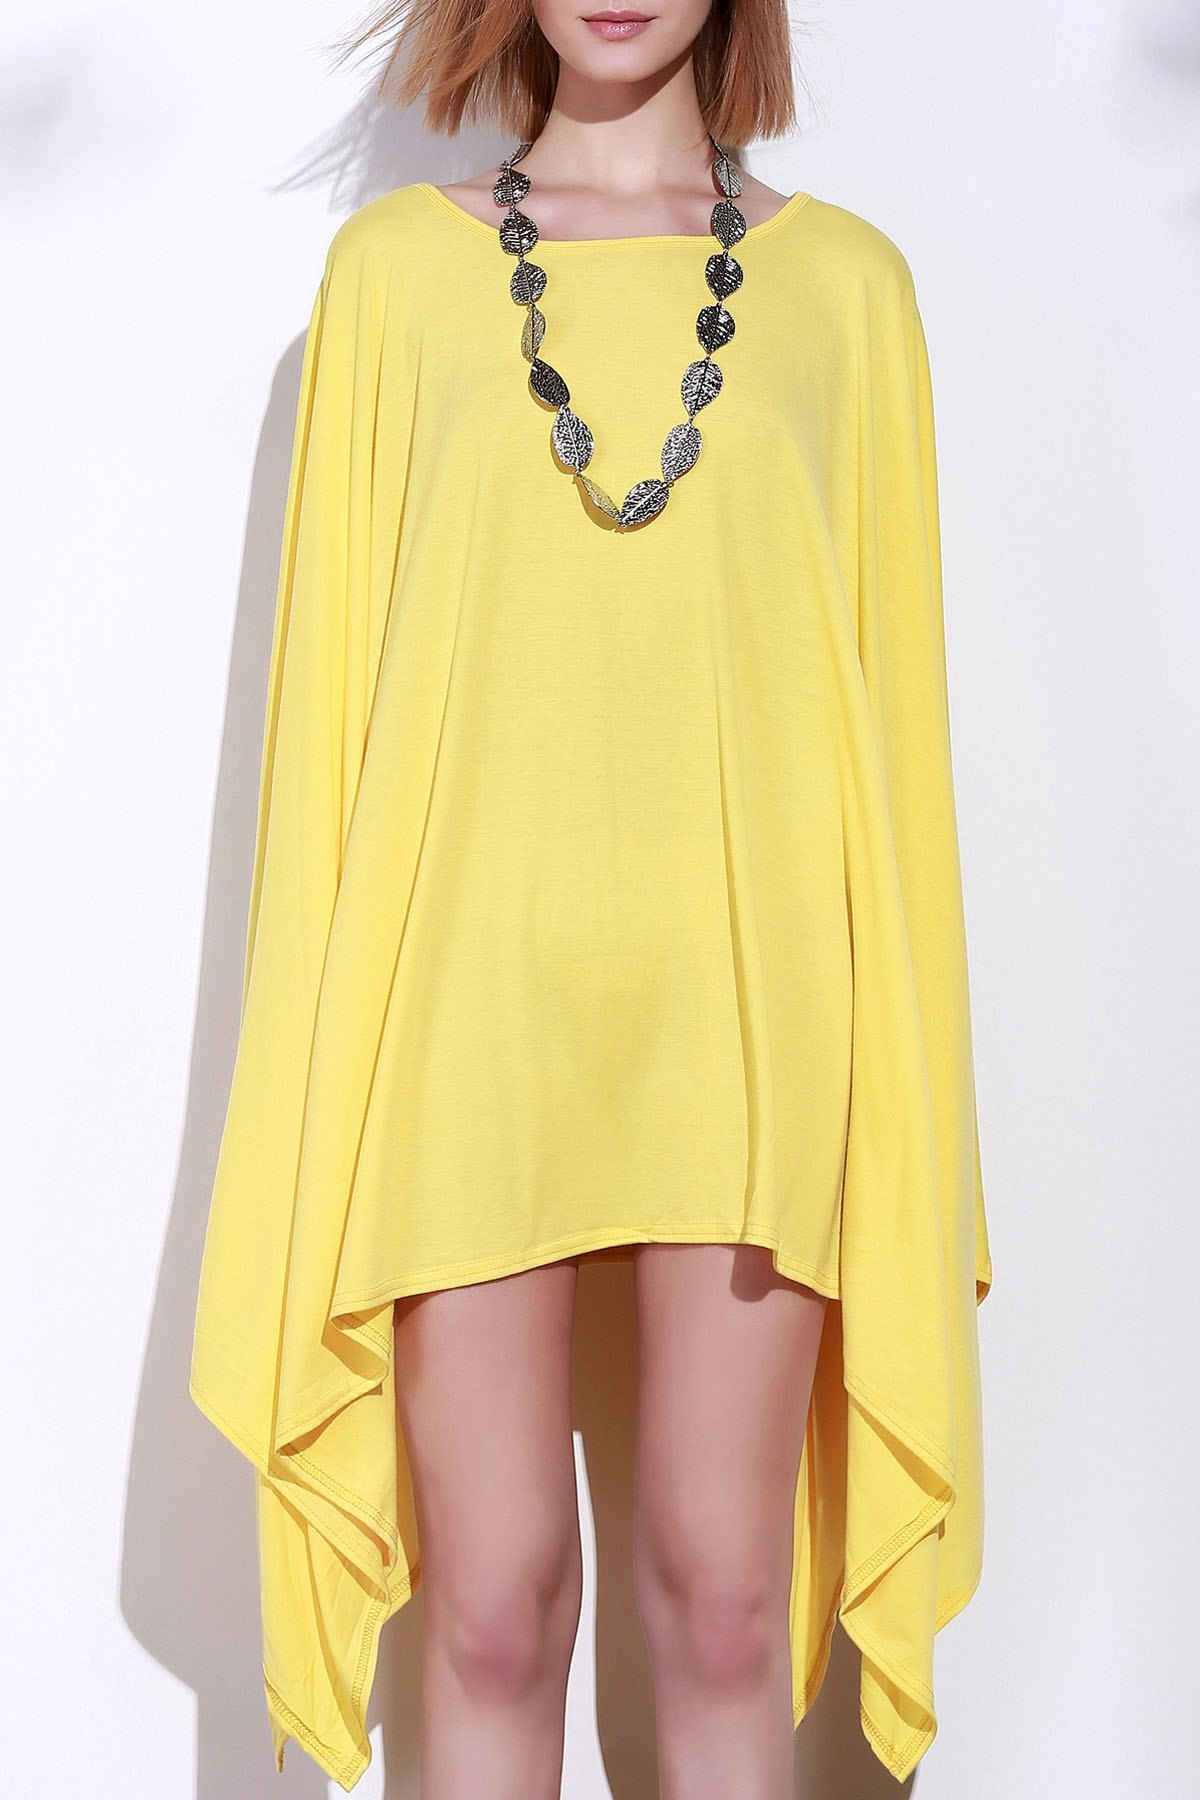 Handkerchief Plus Size Caped Top with Batwing Sleeve - YELLOW M